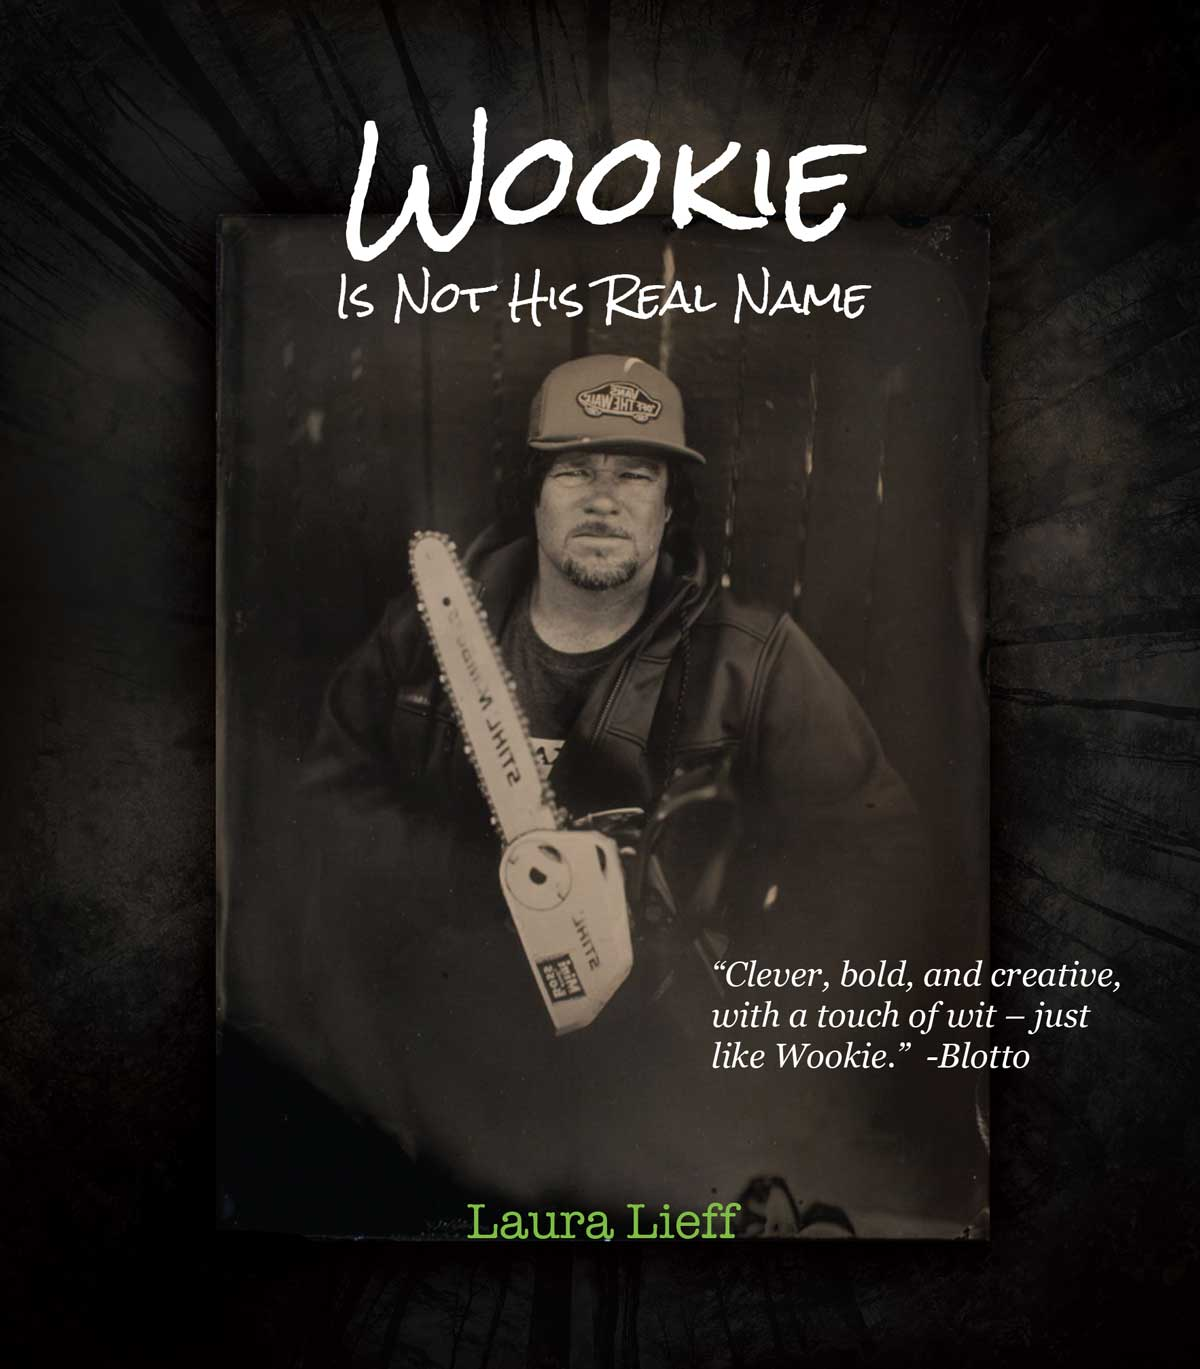 Wookie is Not His Real Name - by Laura Lieff